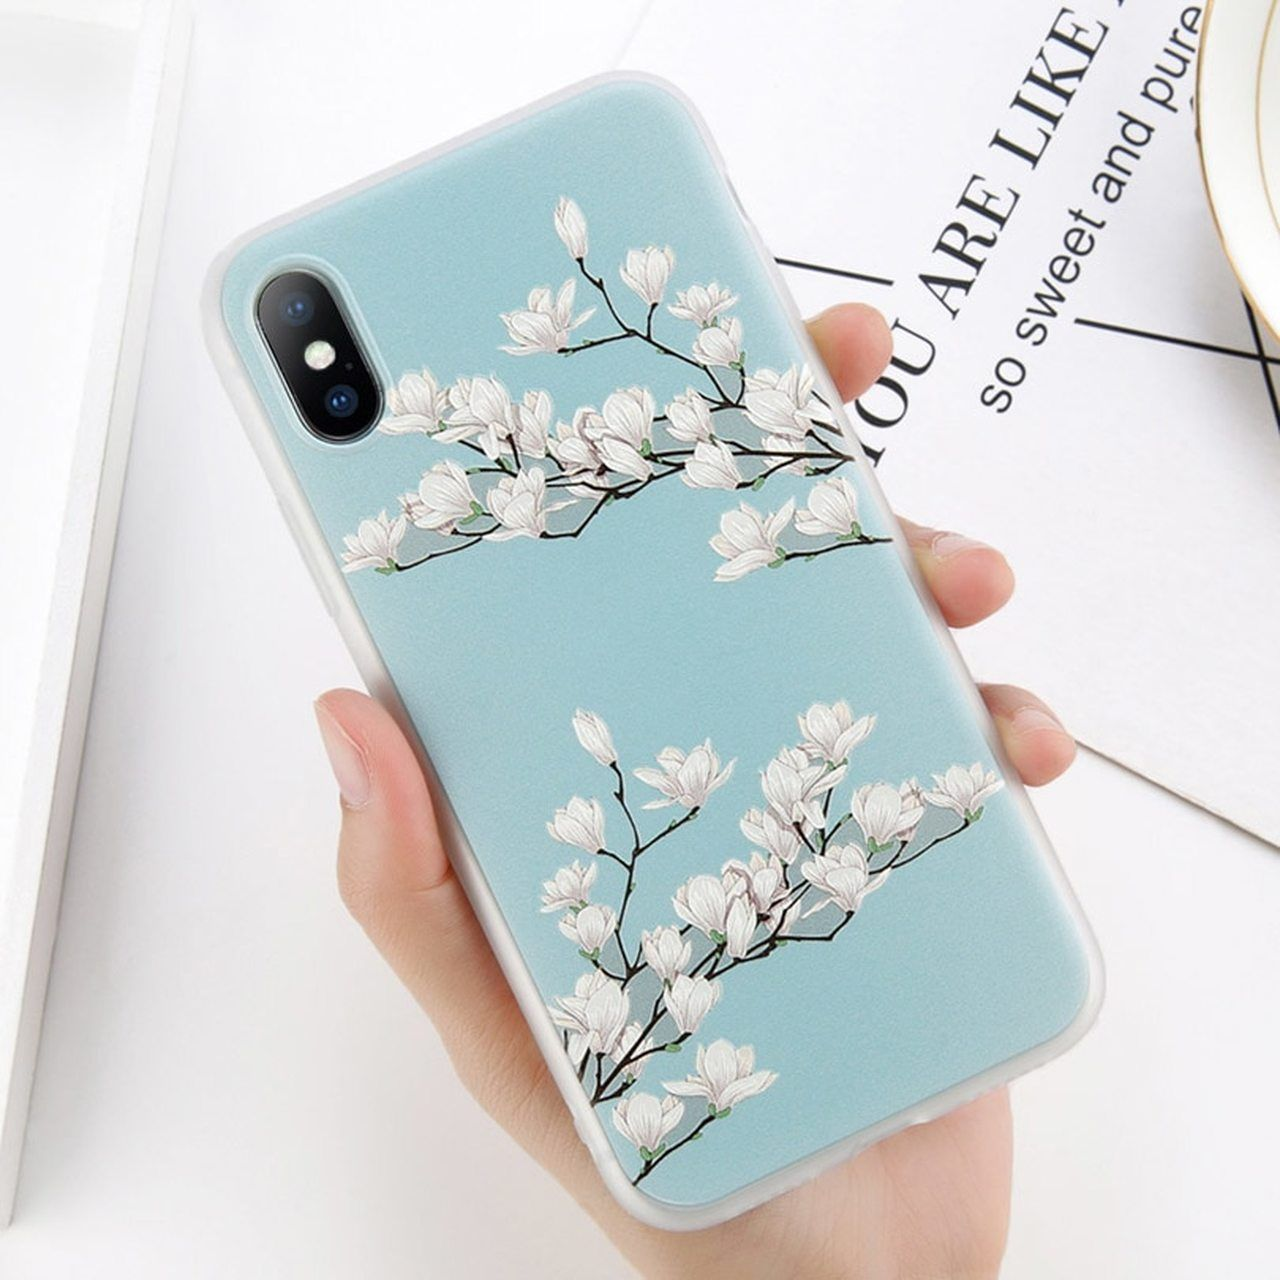 Make Your Mobile Classy With Your Own Unique Ideas By Custom Phone Cases Online Diy Phone Case Cute Phone Cases Apple Phone Case